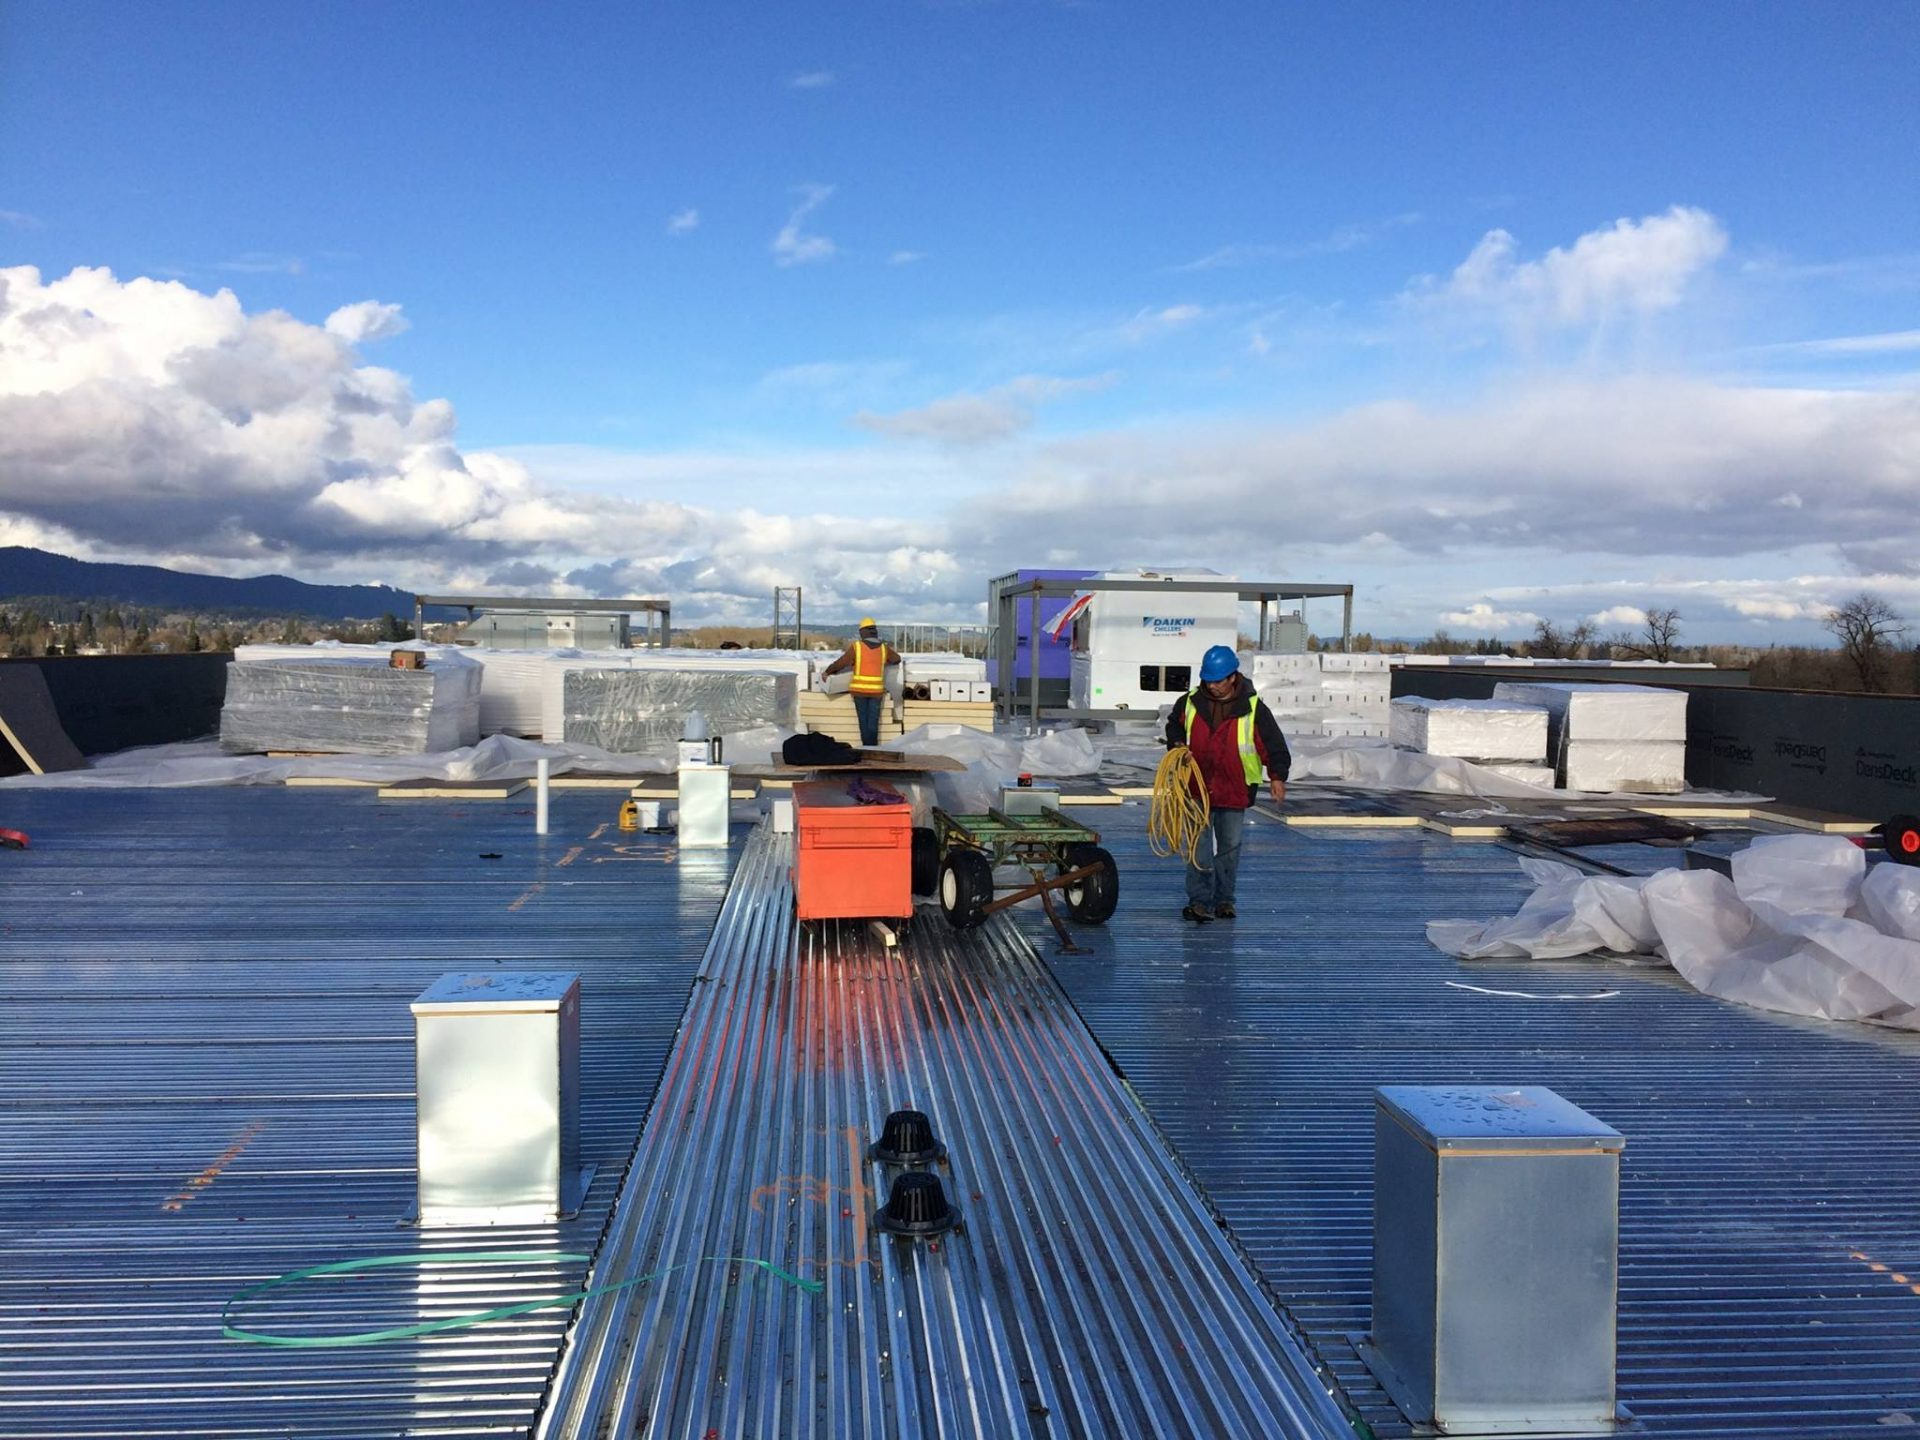 Guys working on a commercial roof. About roof restoration